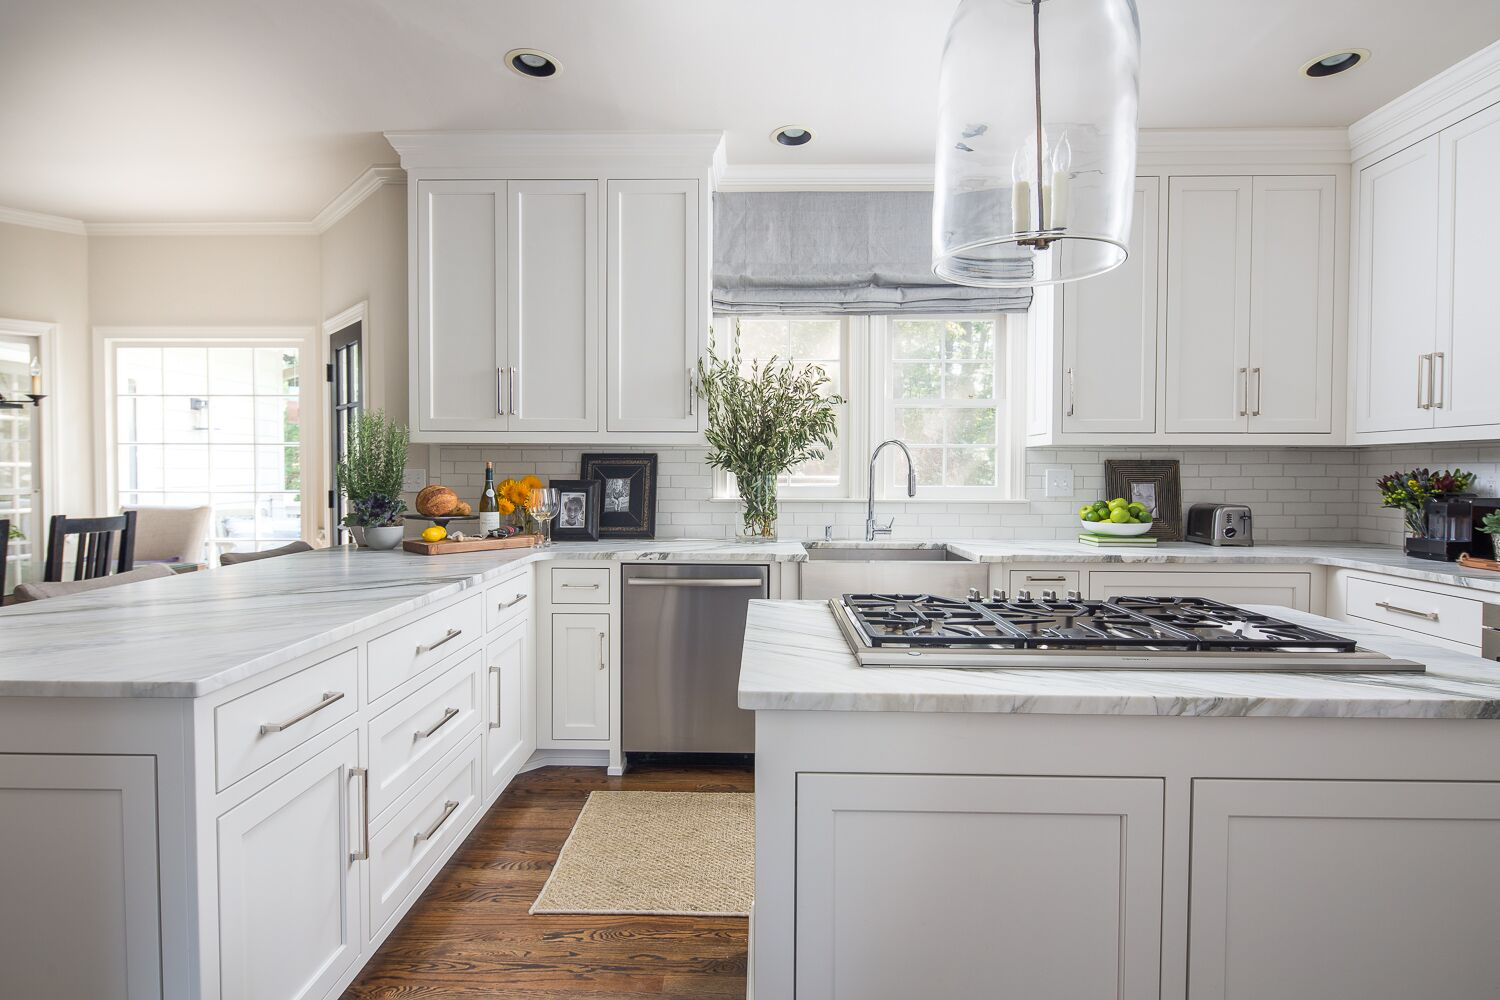 new fresh kitchen design atlanta milton buckhead effortless timeless classic tara fust